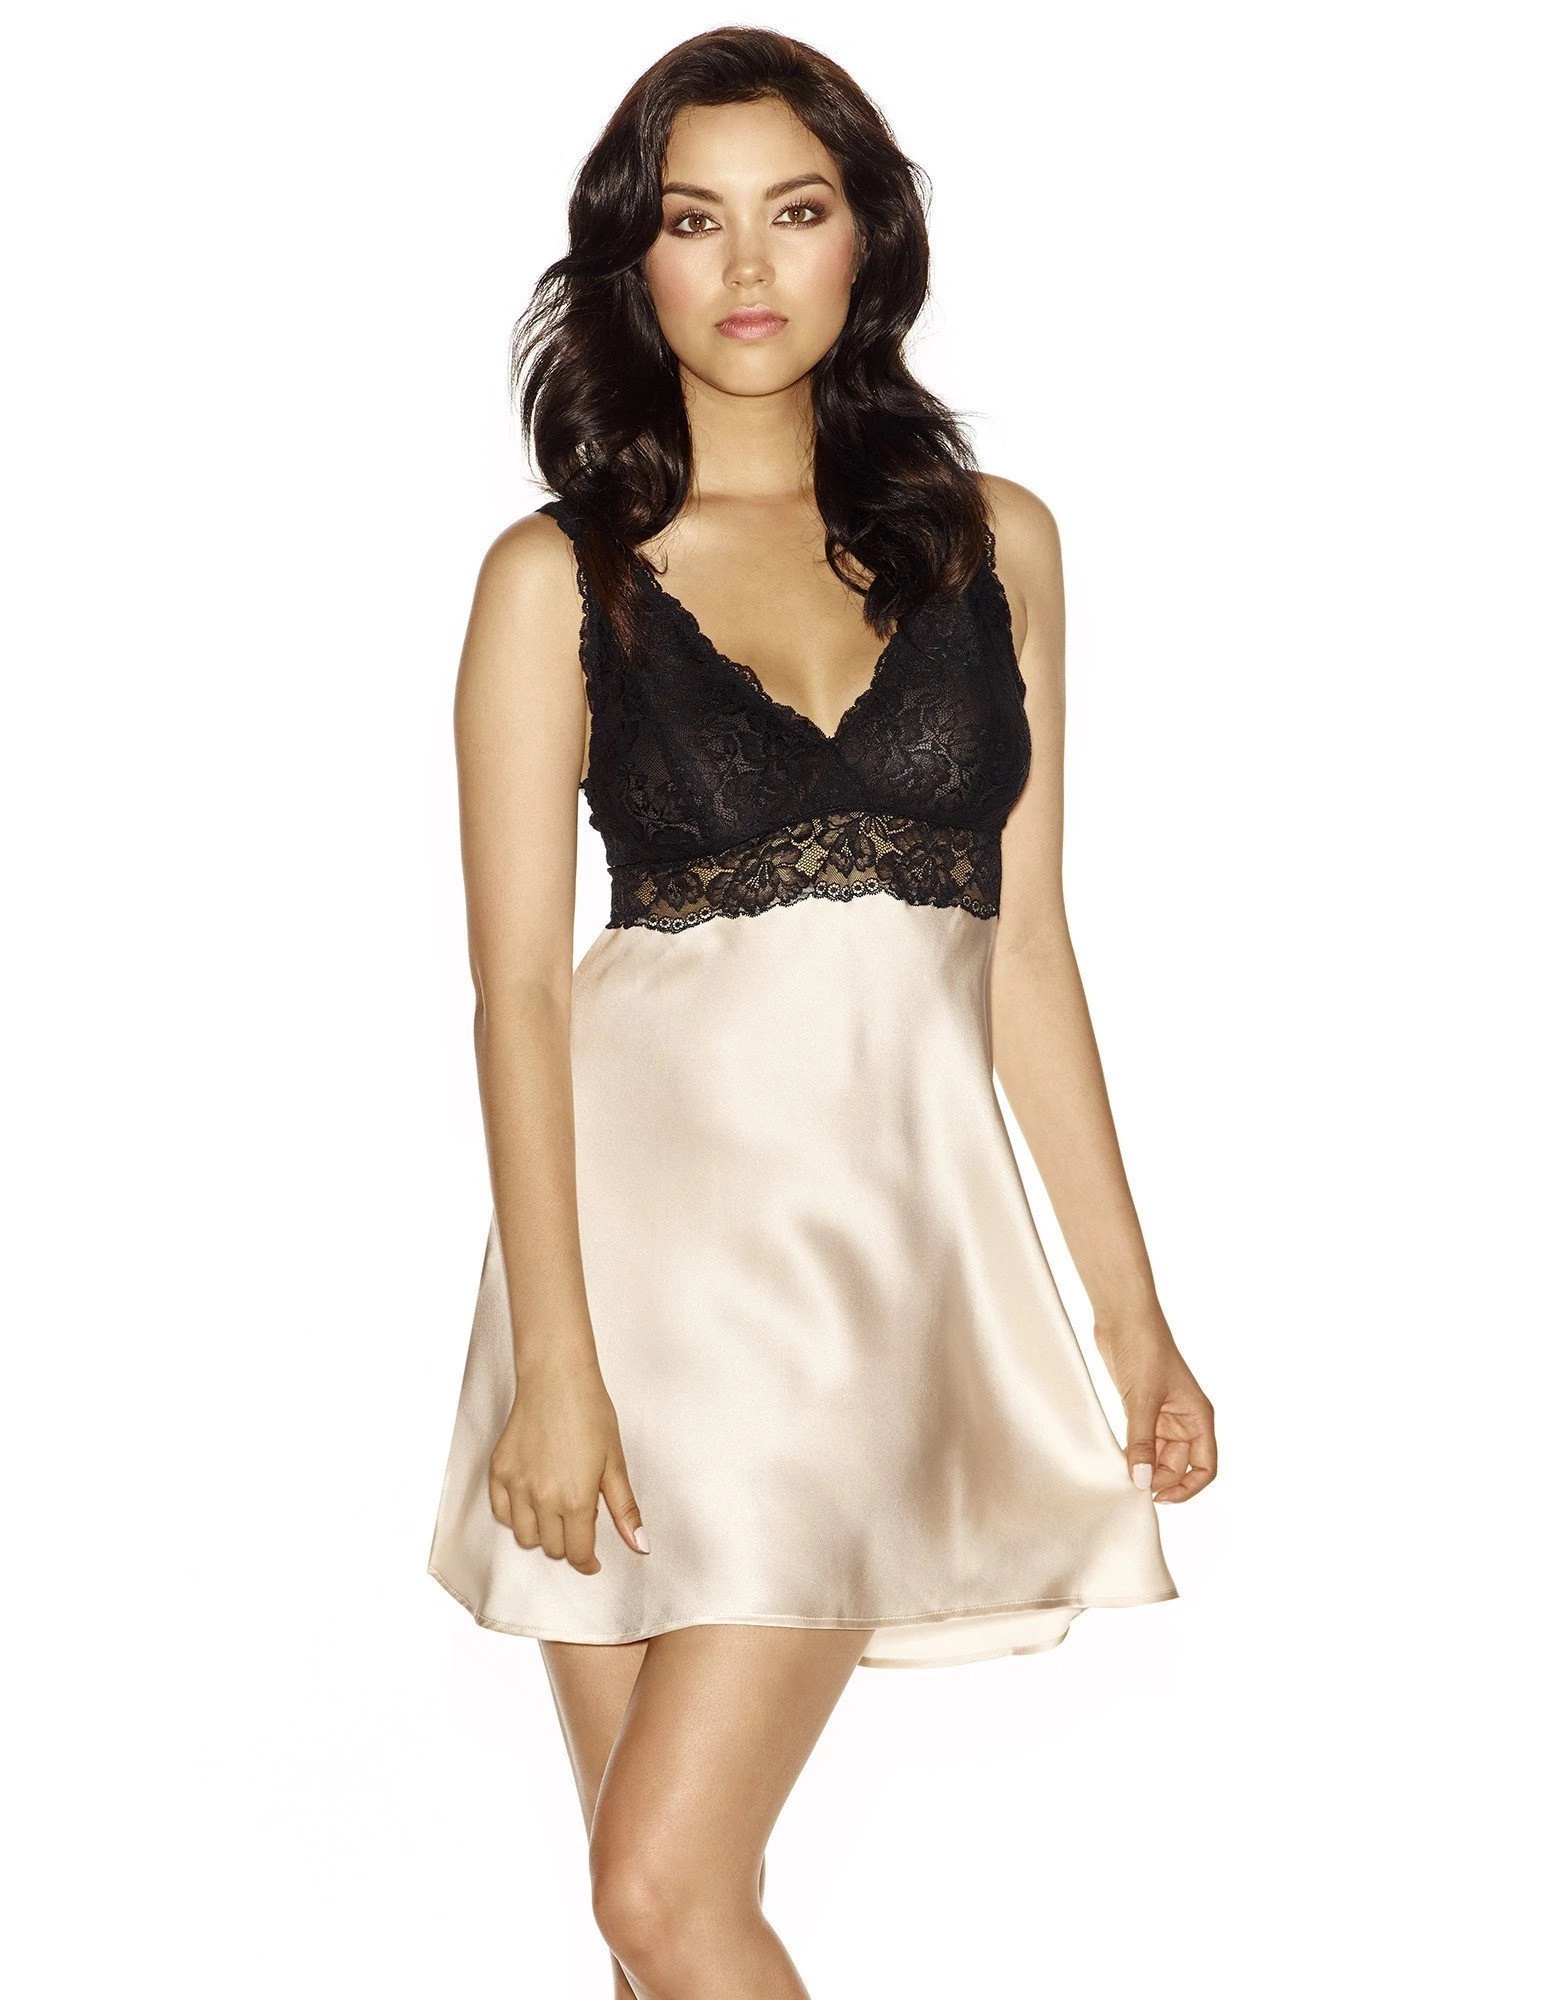 44. Morgan bust support chemise $161. XS-XL. Champagne